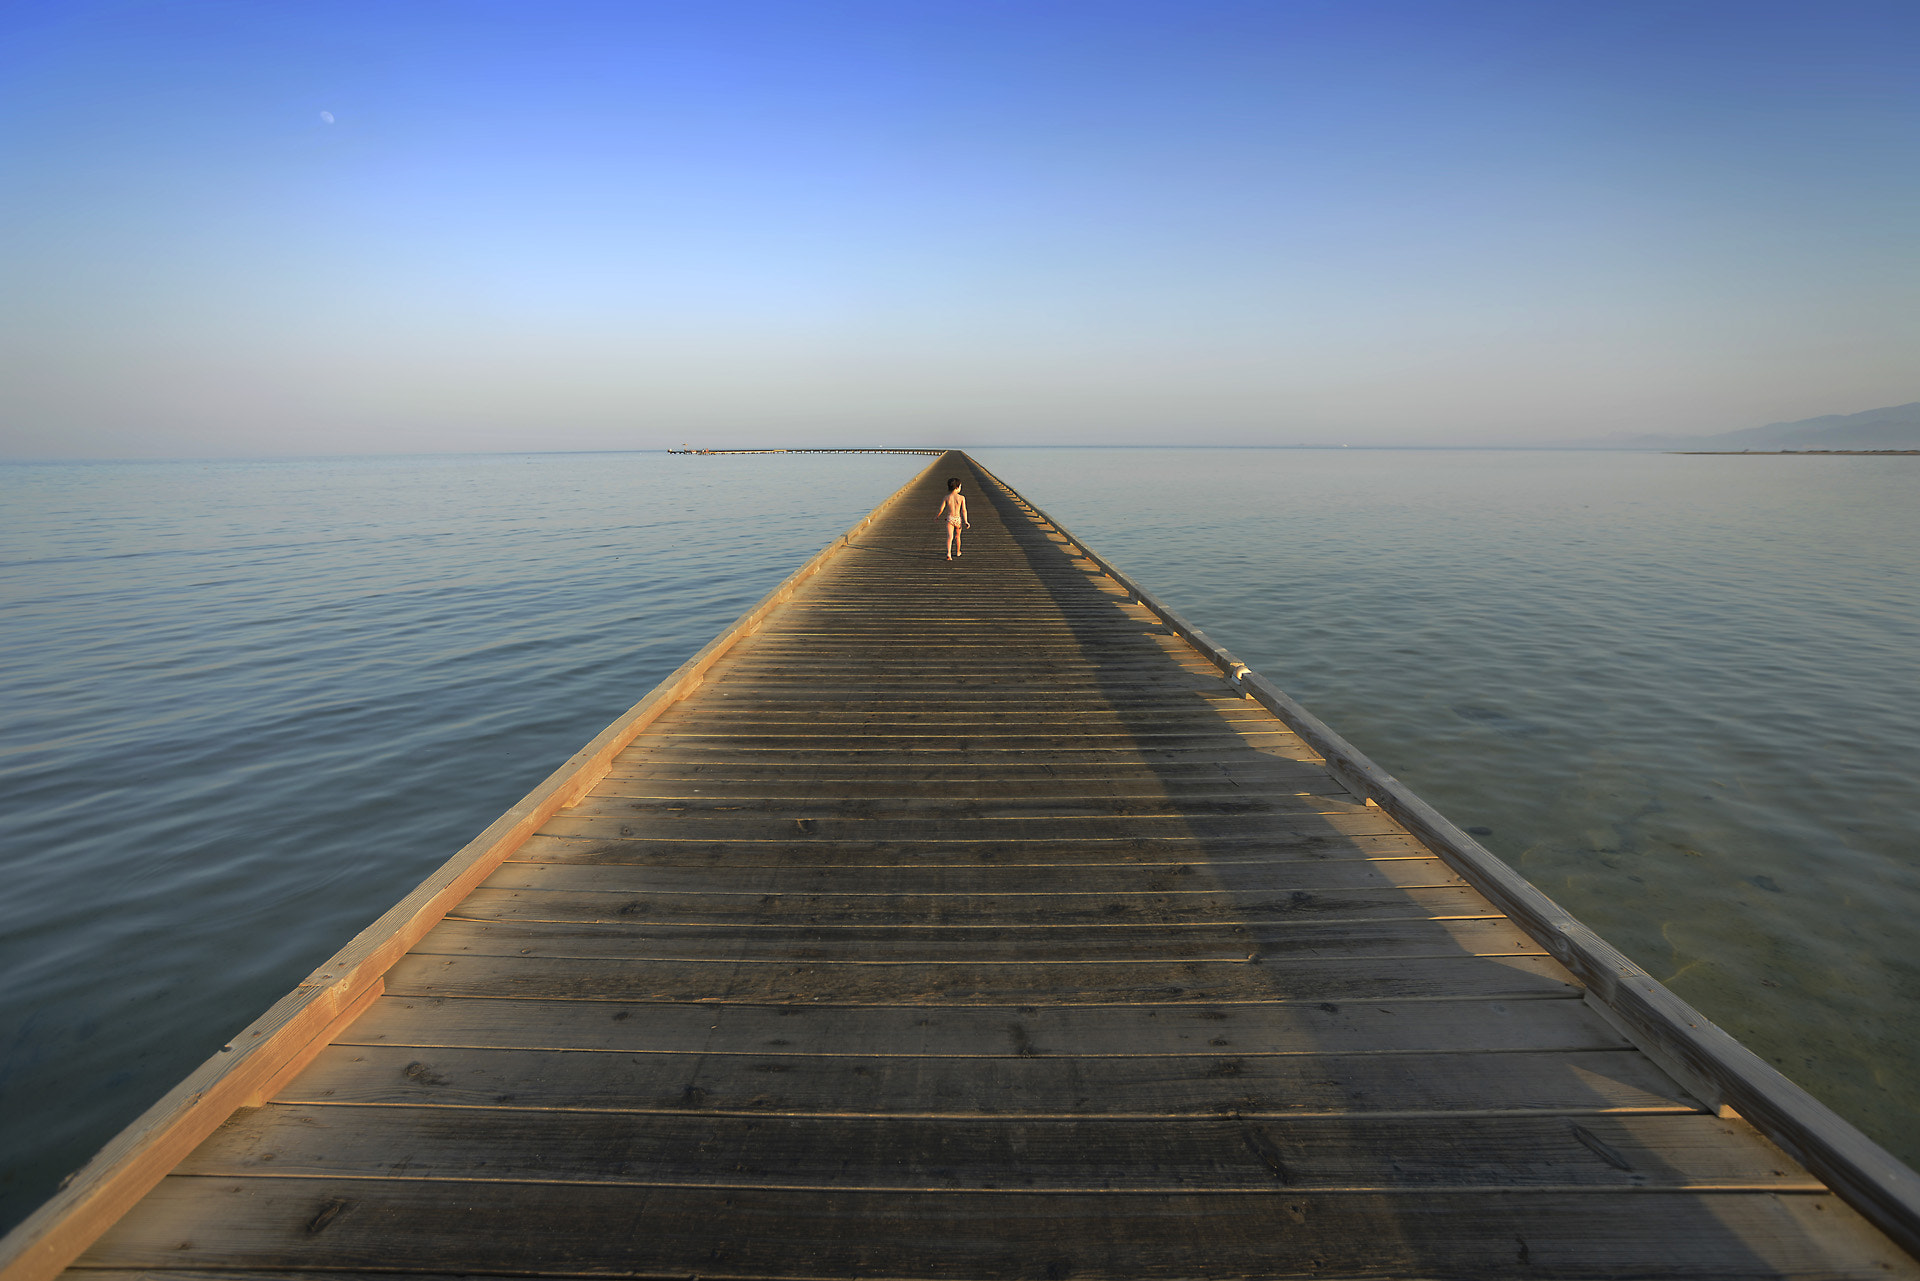 Photograph Pier in the Red Sea by Tibor Mester on 500px